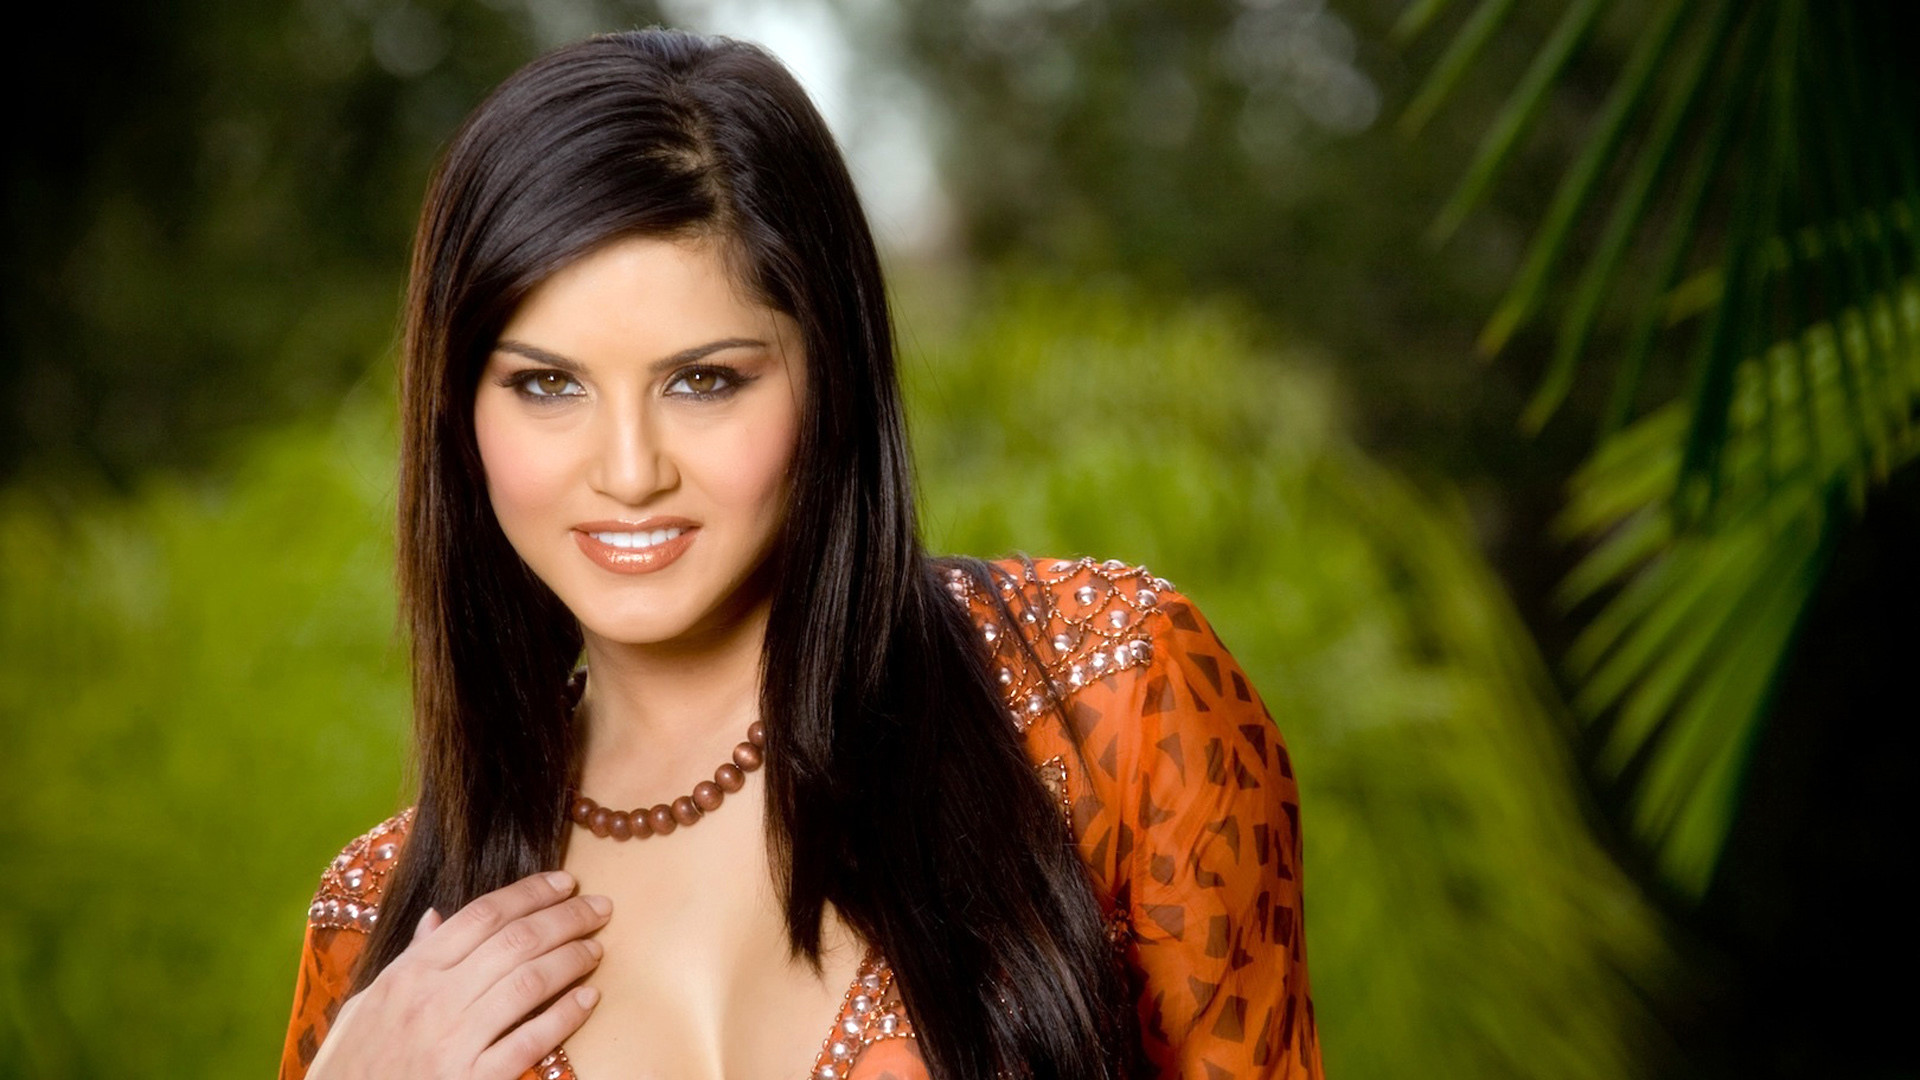 Wallpapers Bollywood All Hd: Latest Bollywood Actress Wallpapers 2018 HD (74+ Images